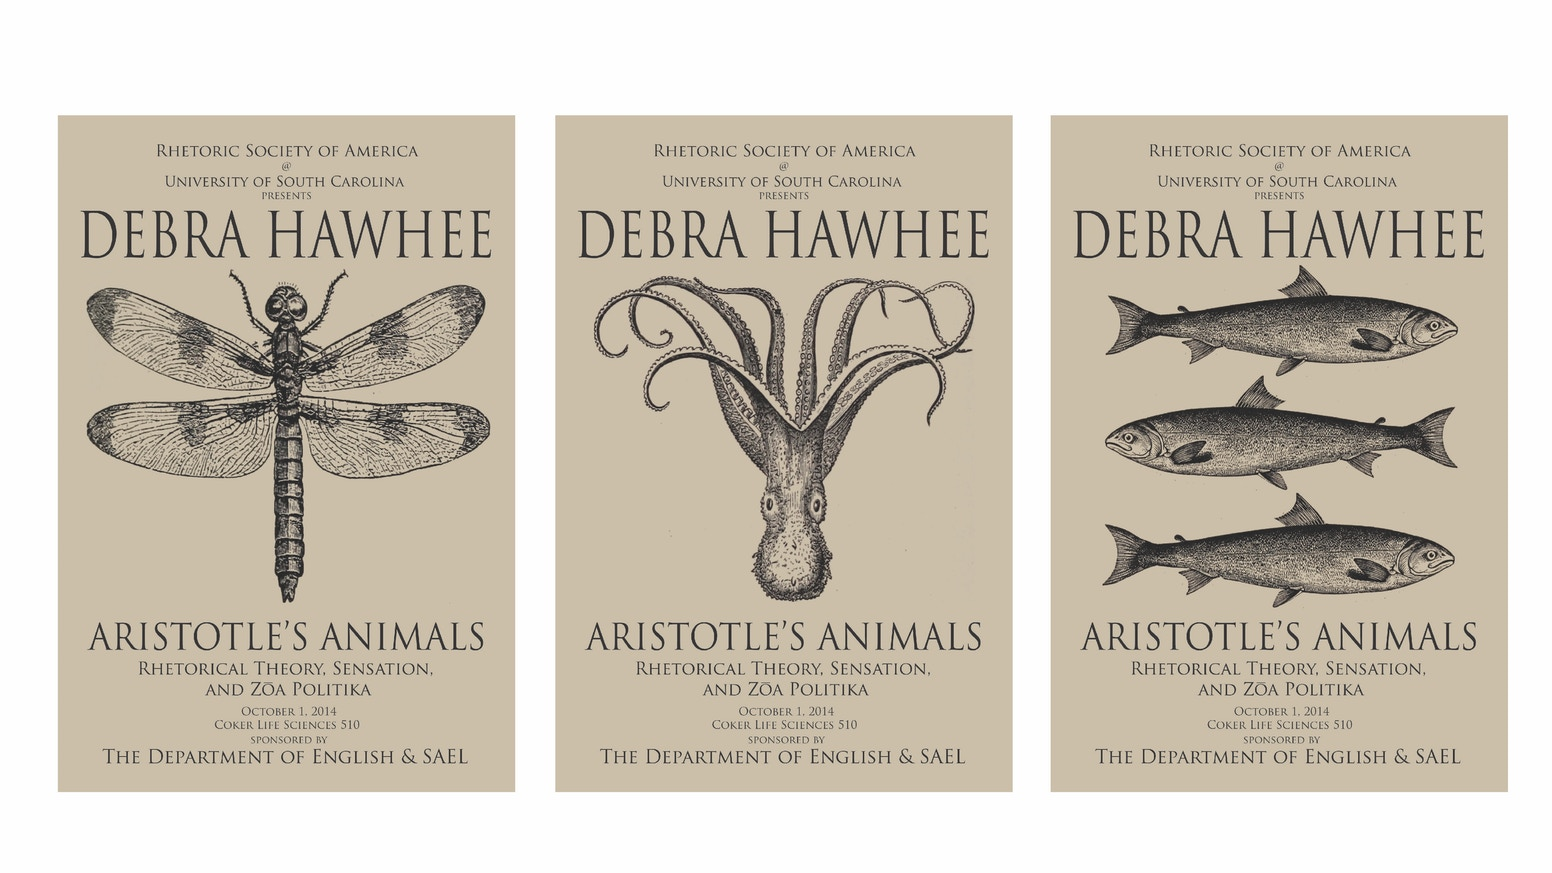 debra hawhee and aristotle s animals a rhetorical poster by brian